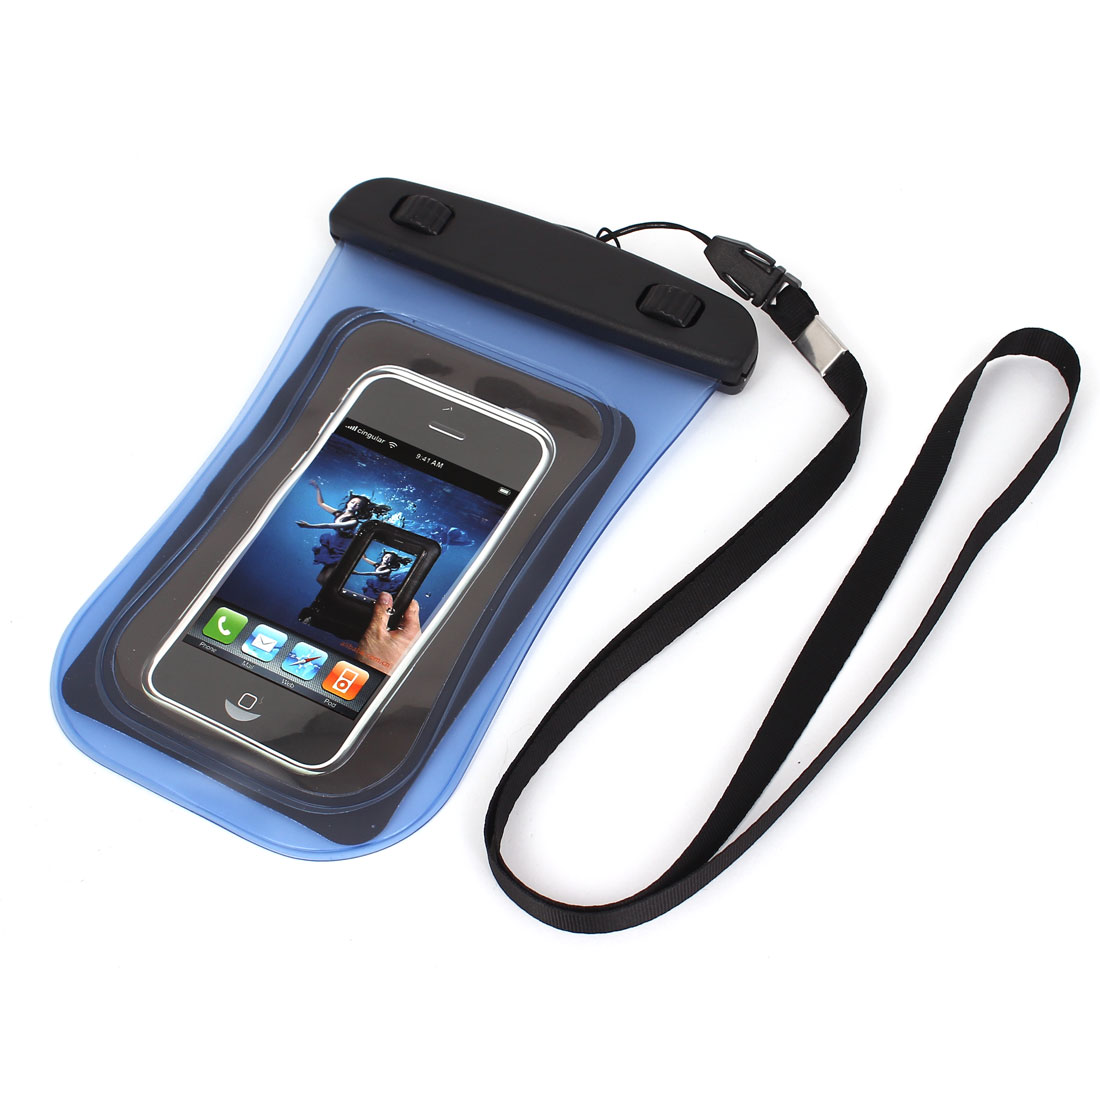 "Universal Waterproof Case Dry Bag Protective Cover Pouch Blue for 4"" Cell Phone"